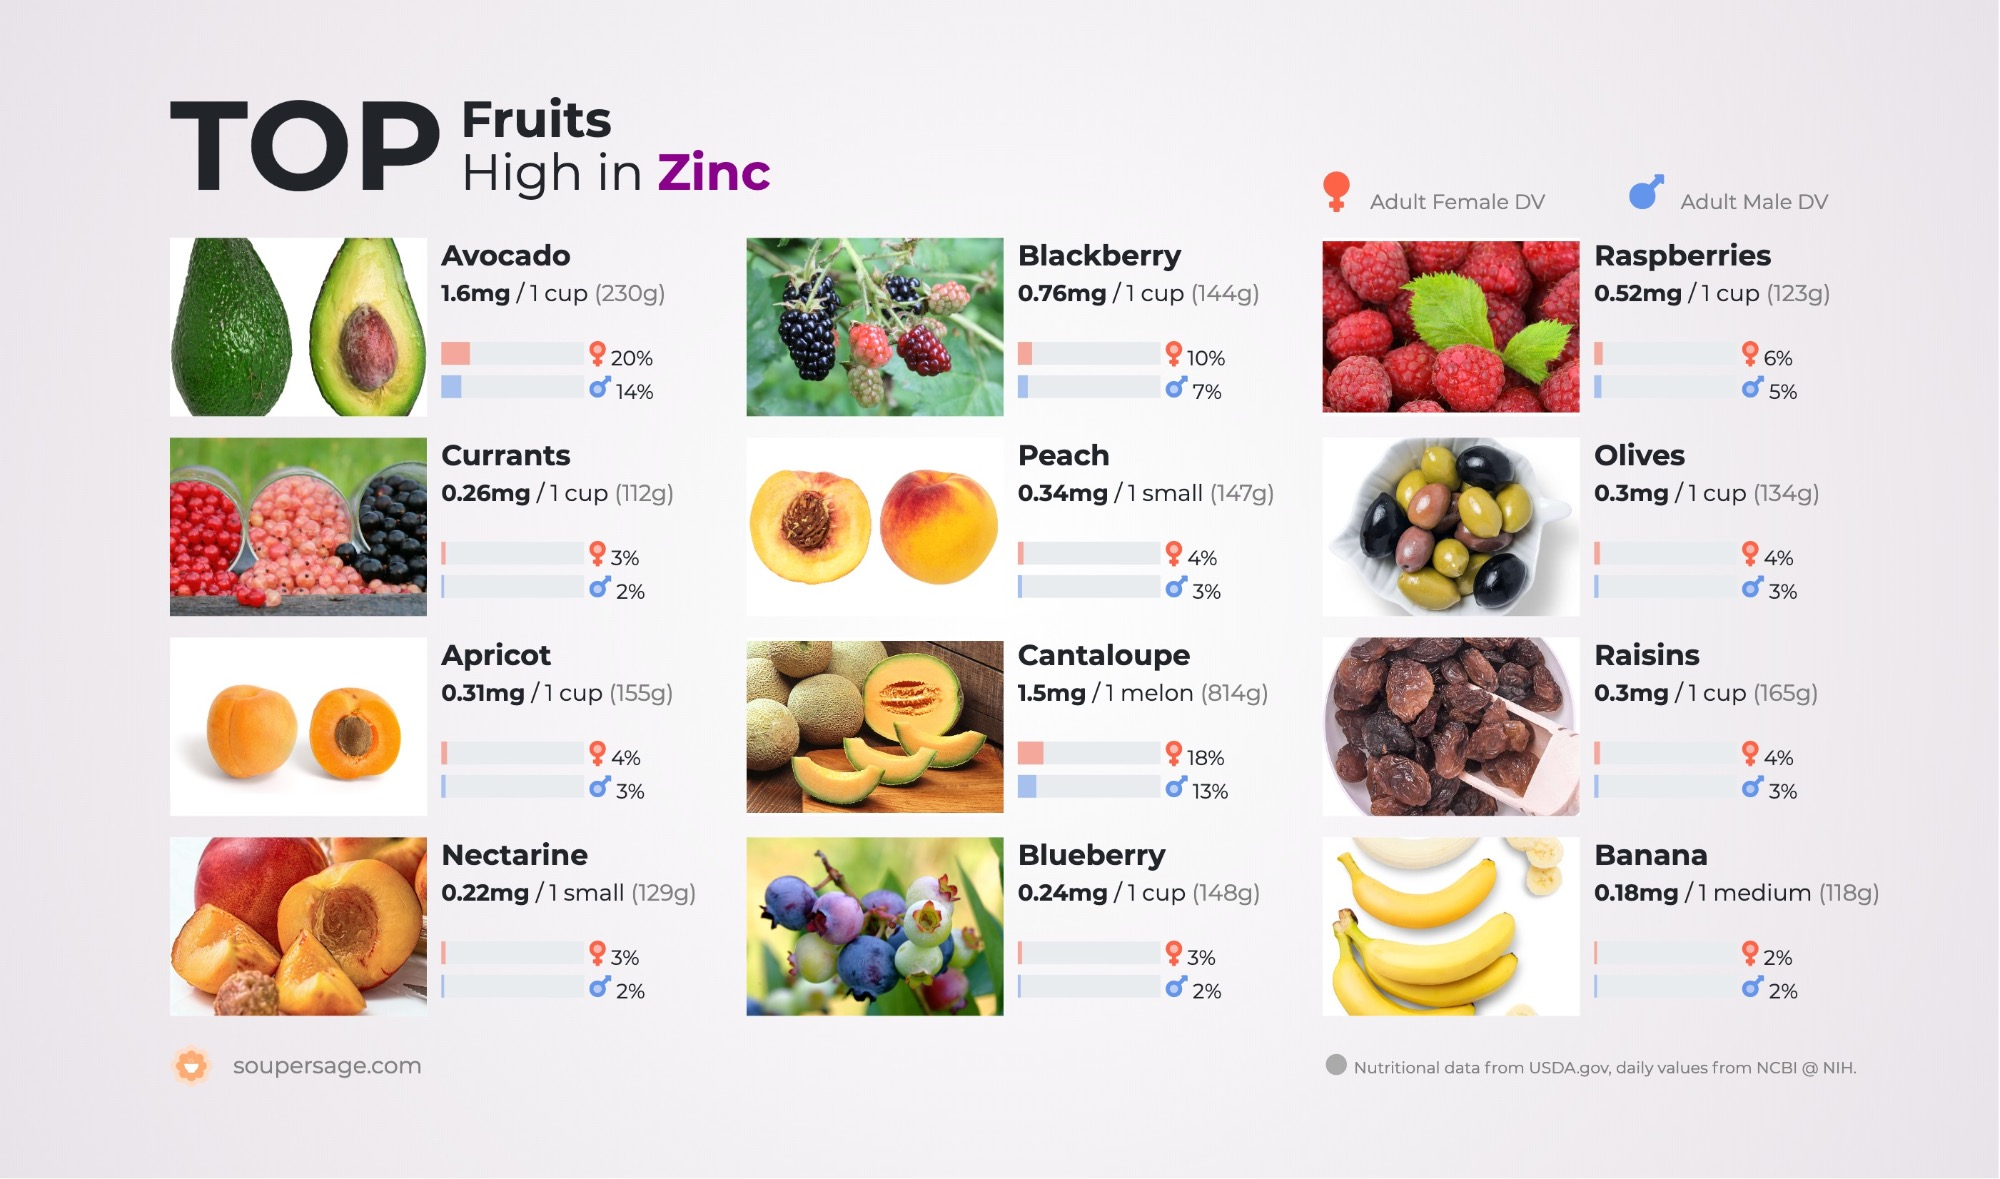 image of Top Fruits High in Zinc